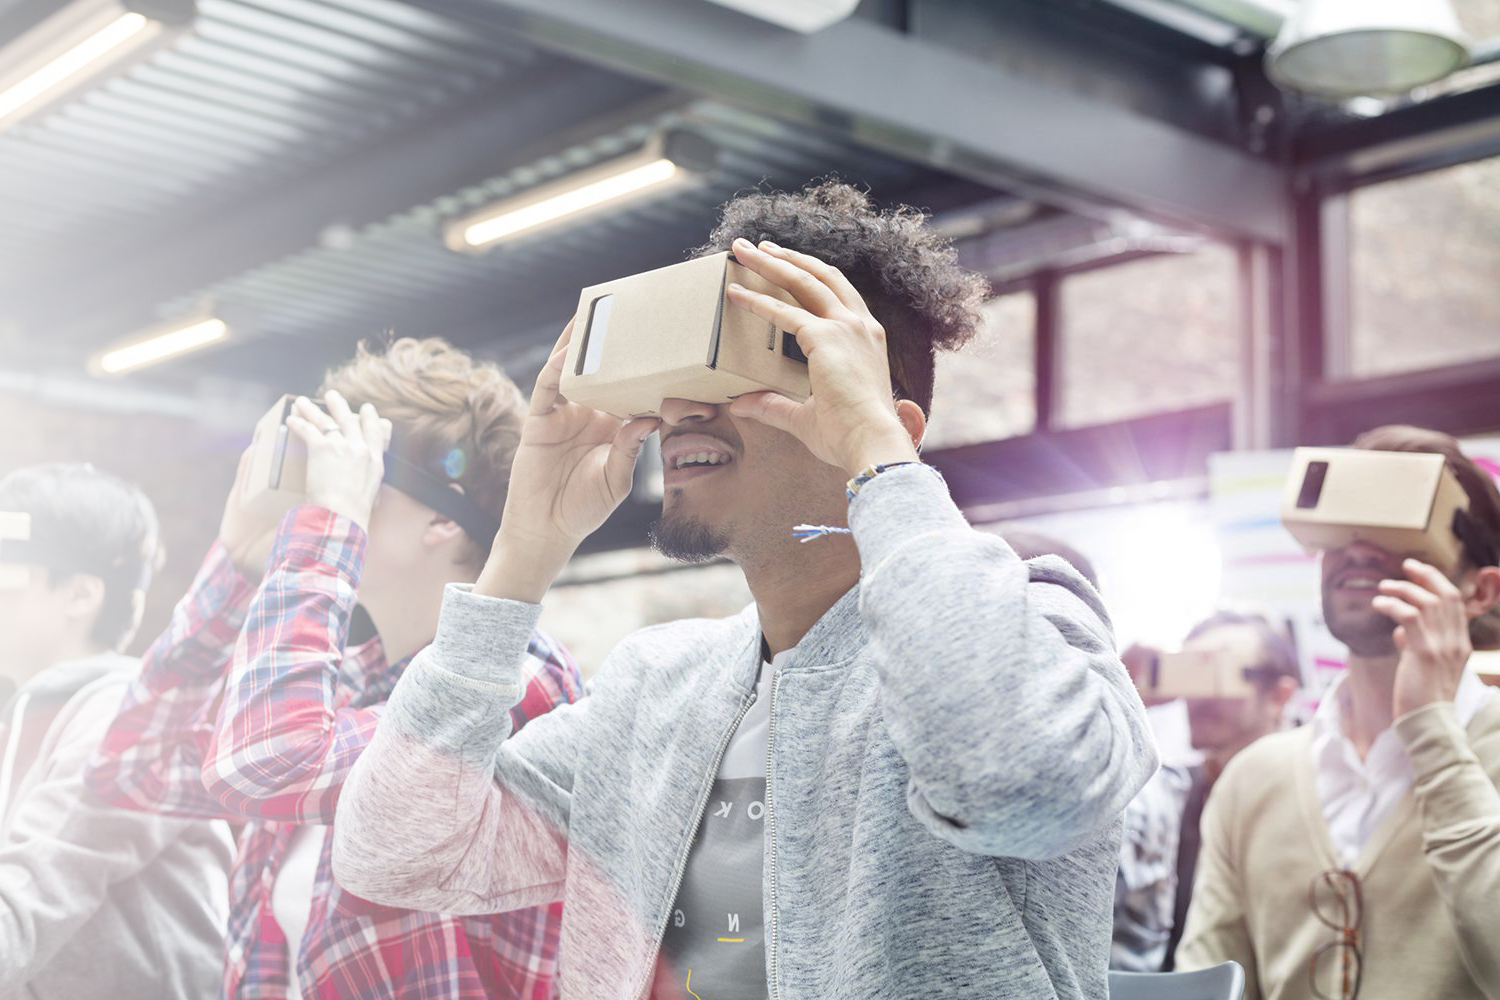 How Virtual Reality could become a marketing opportunity